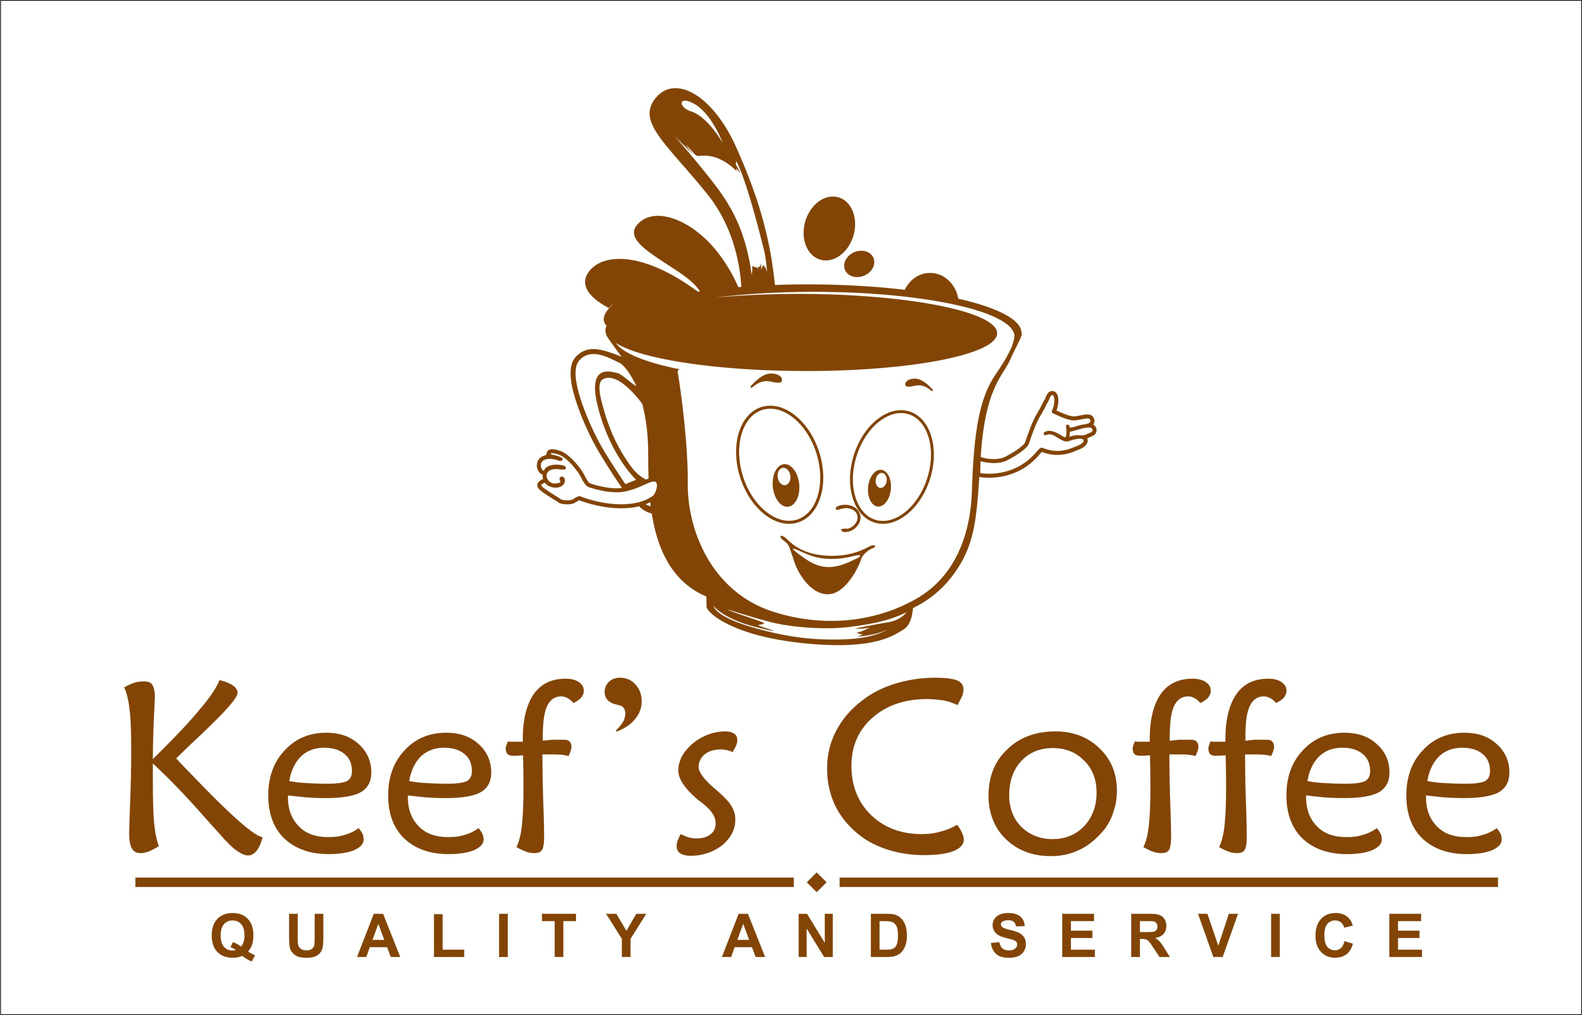 Logo Design by Private User - Entry No. 18 in the Logo Design Contest Keef's coffee Logo Design.